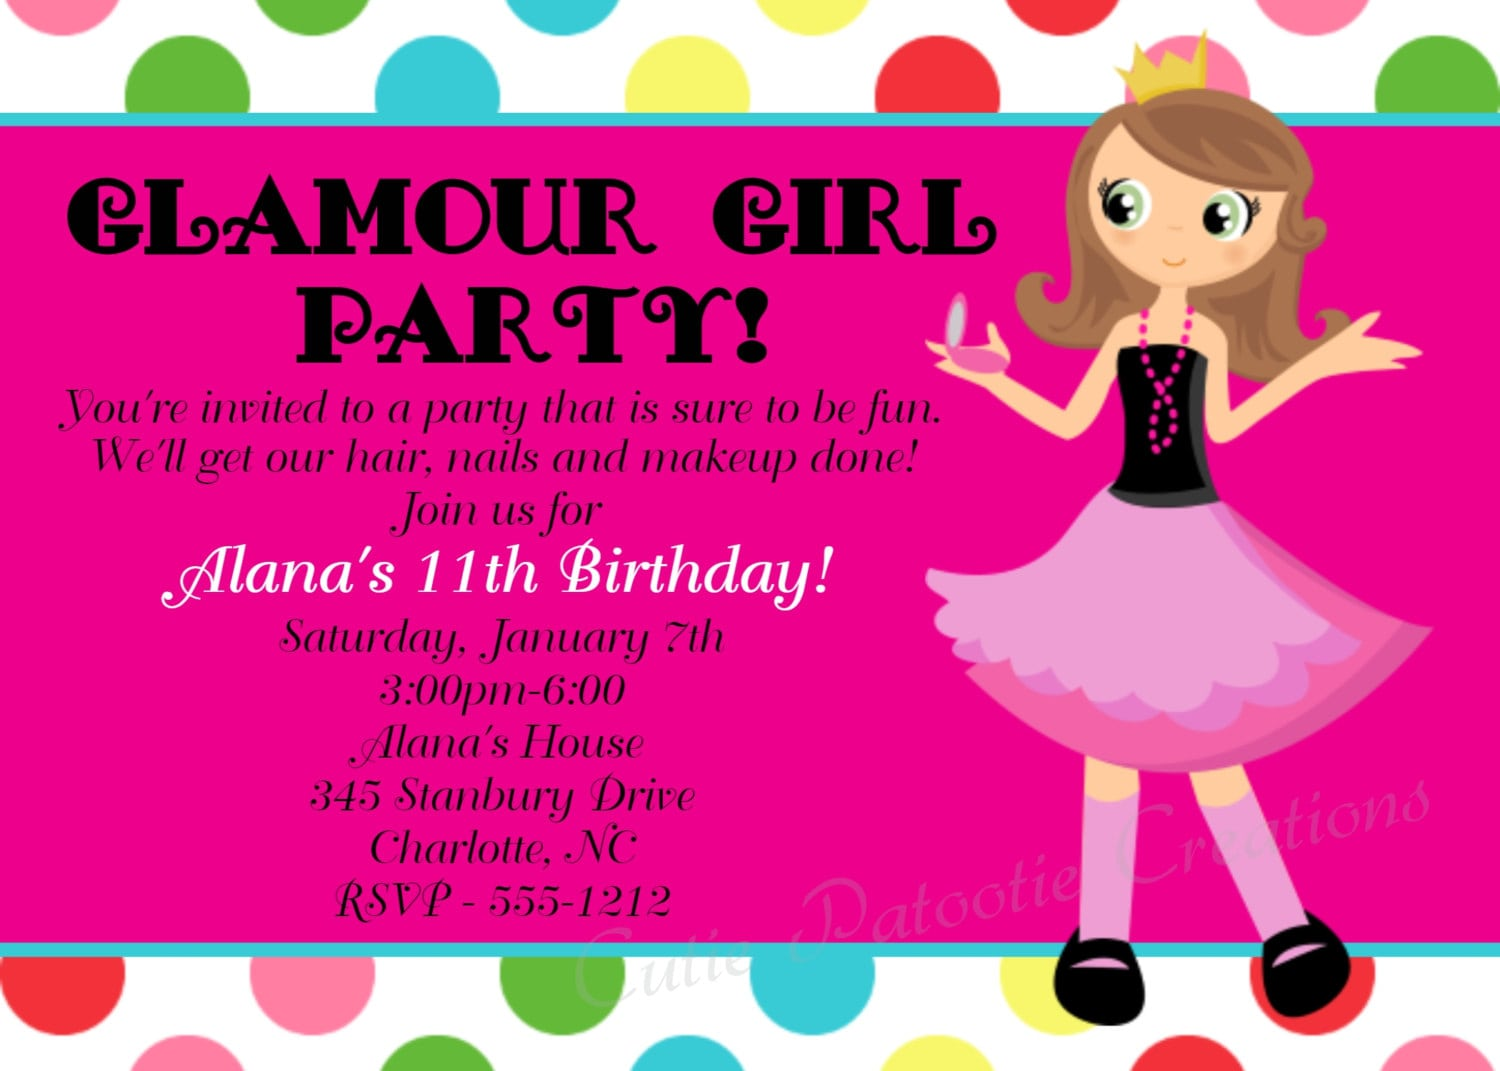 Adult Toy Party Invitations - Mickey Mouse Invitations Templates